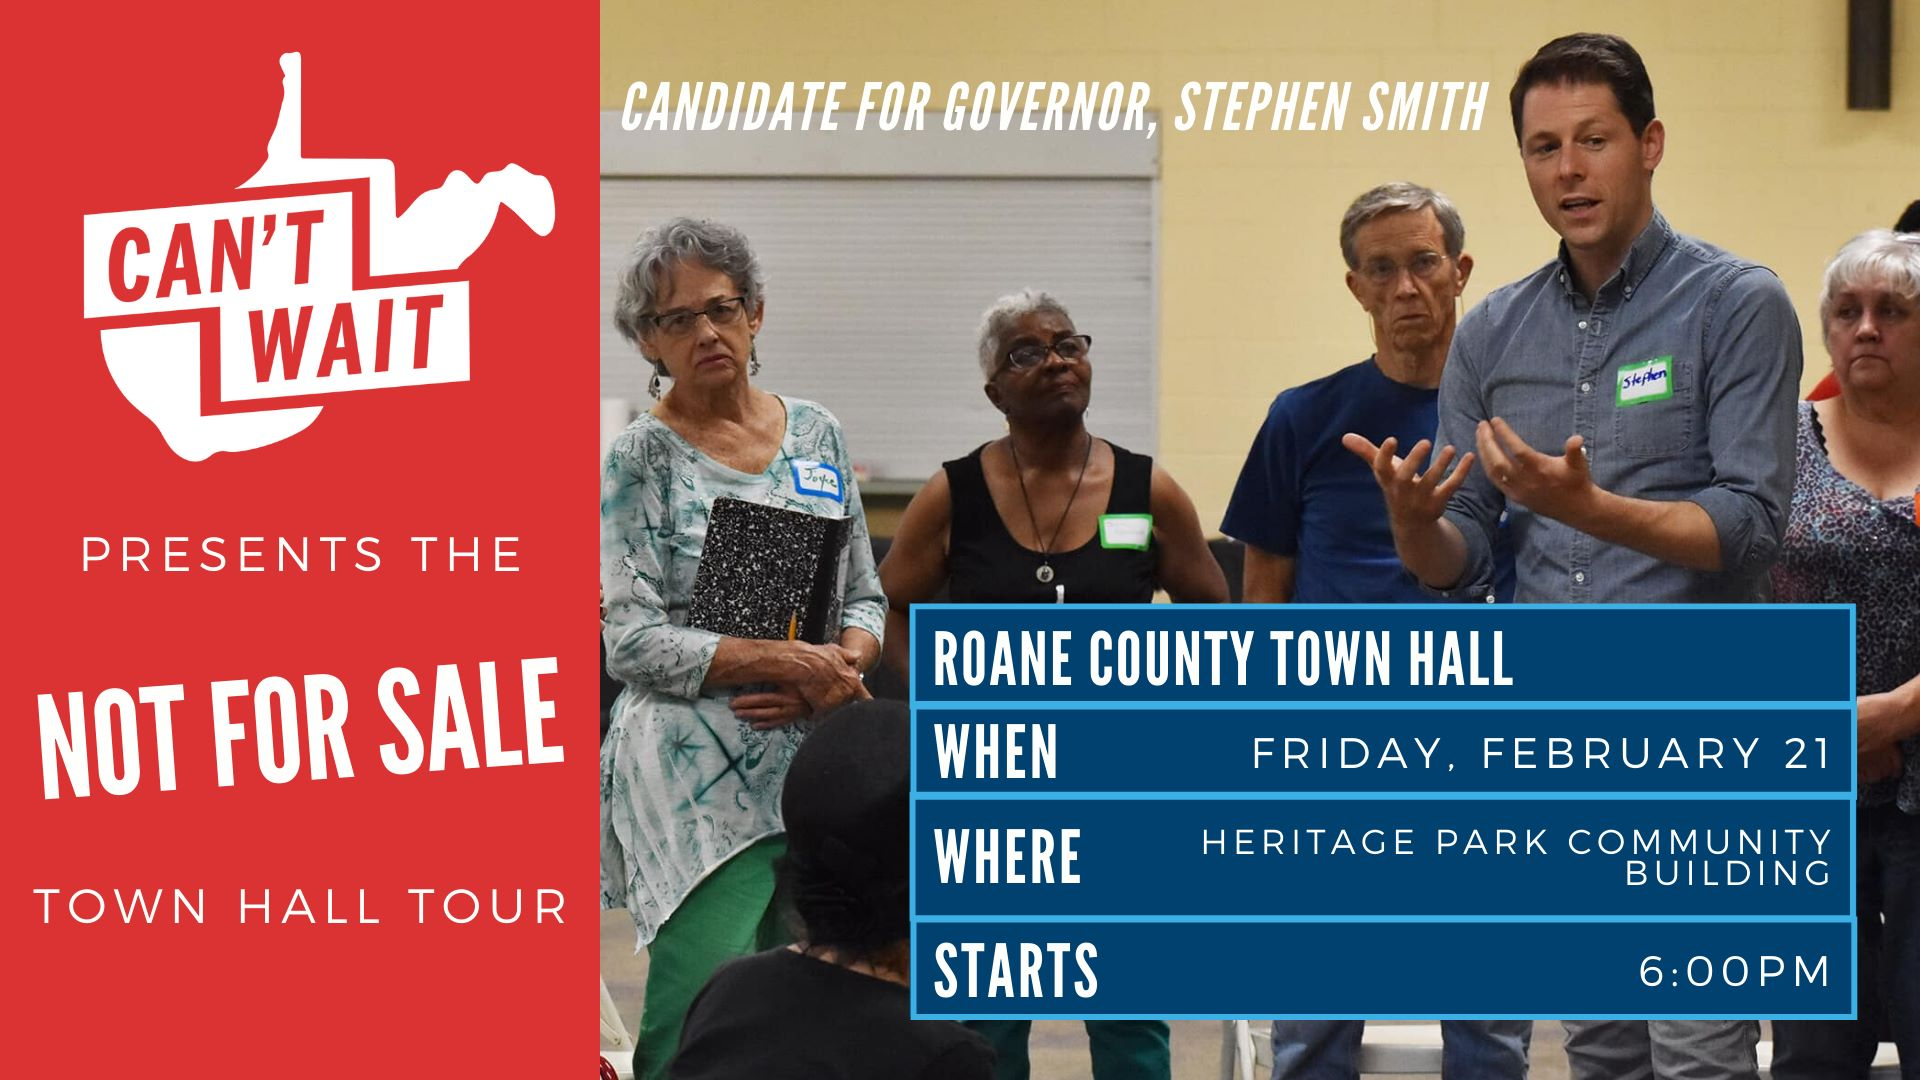 Roane County Town Hall graphic